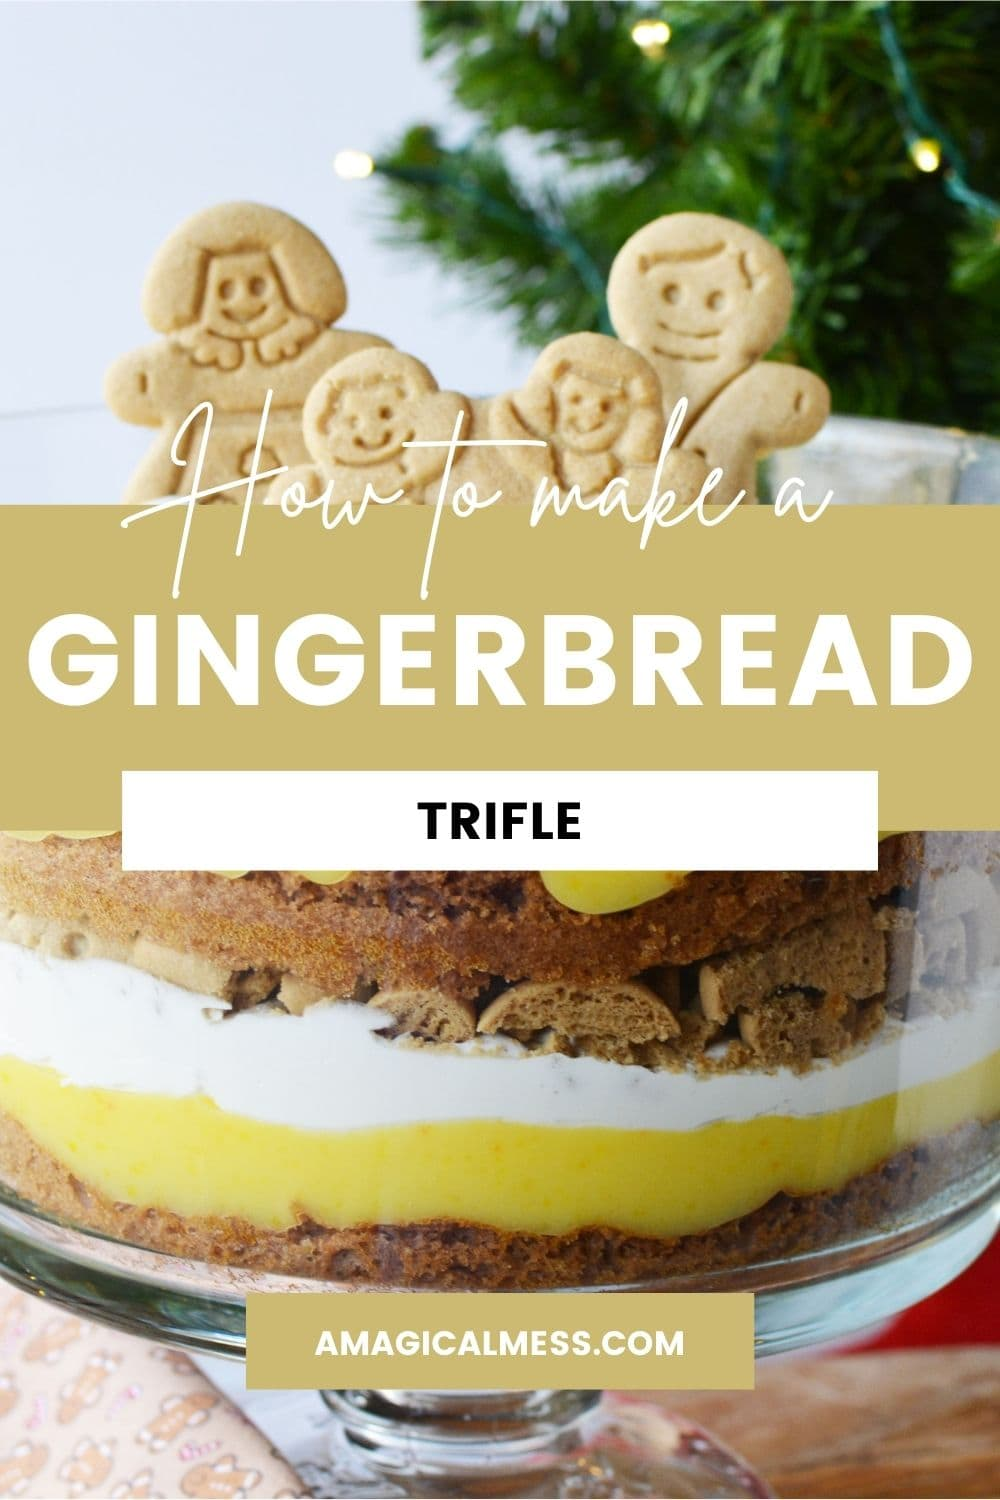 Gingerbread cookies in a layered trifle dessert.